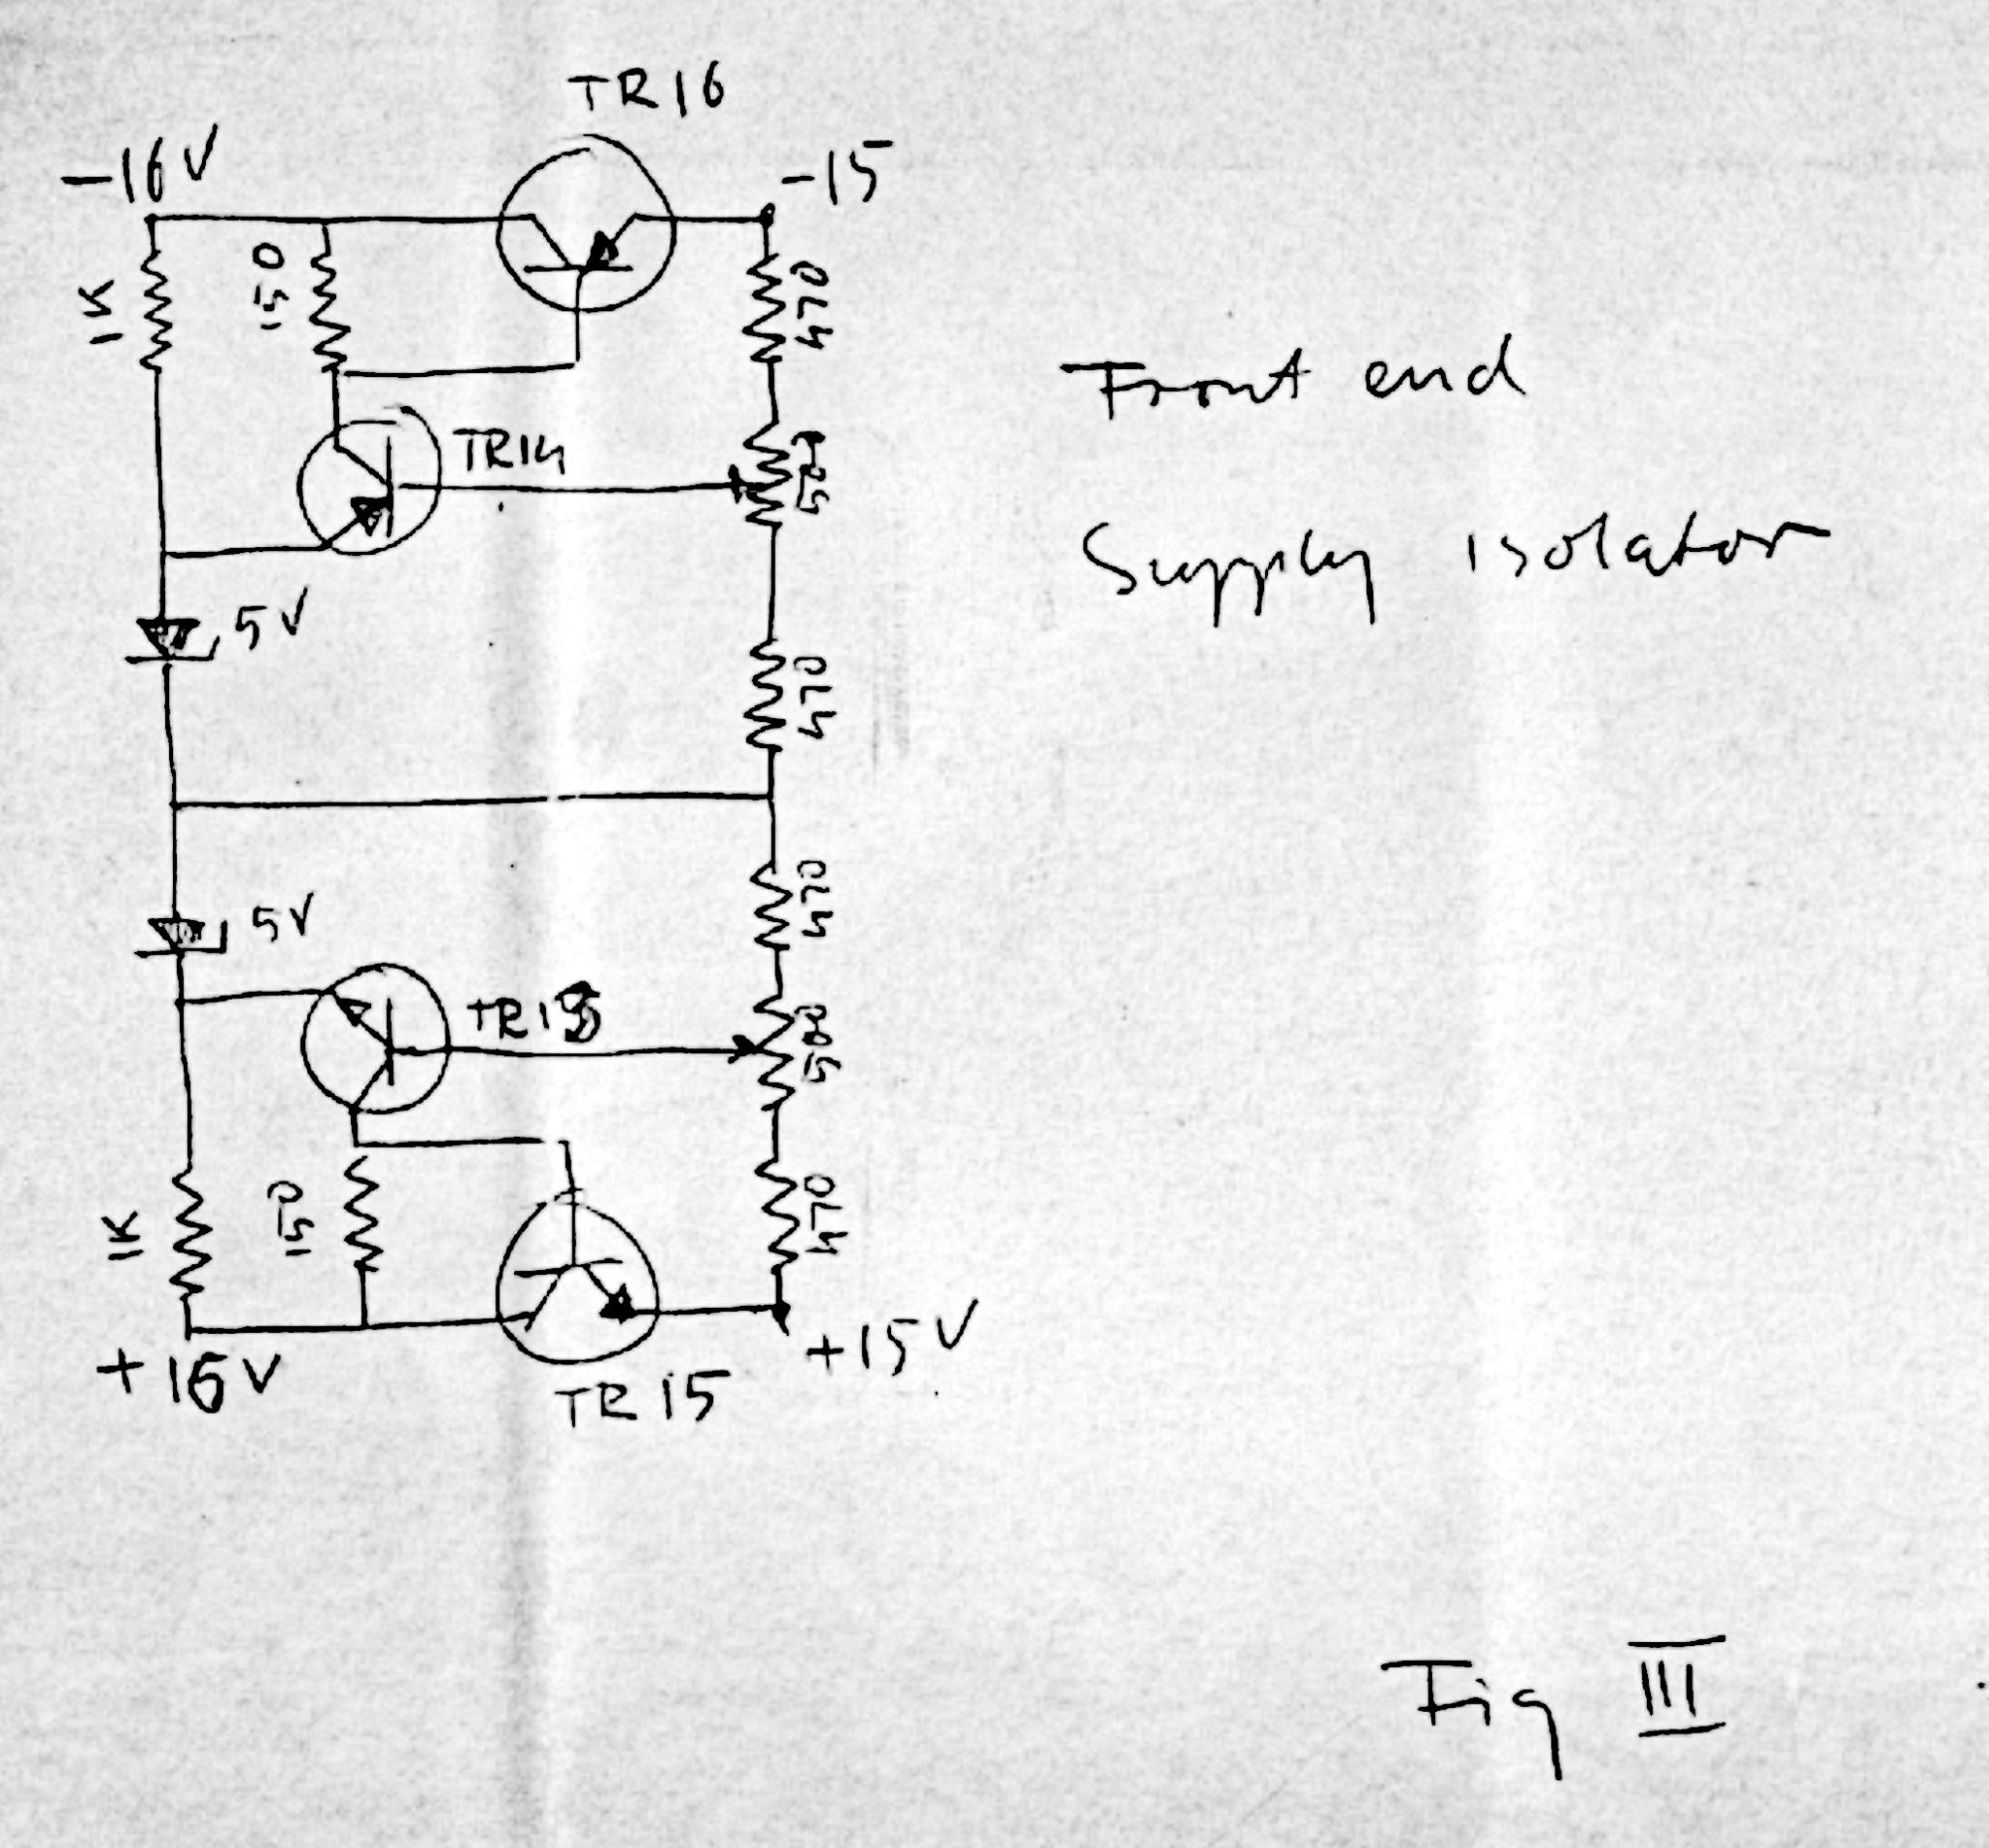 hight resolution of drives the hydraulic servo valve which causes the movement of the sculpture in the direction of the sound thus closing the loop